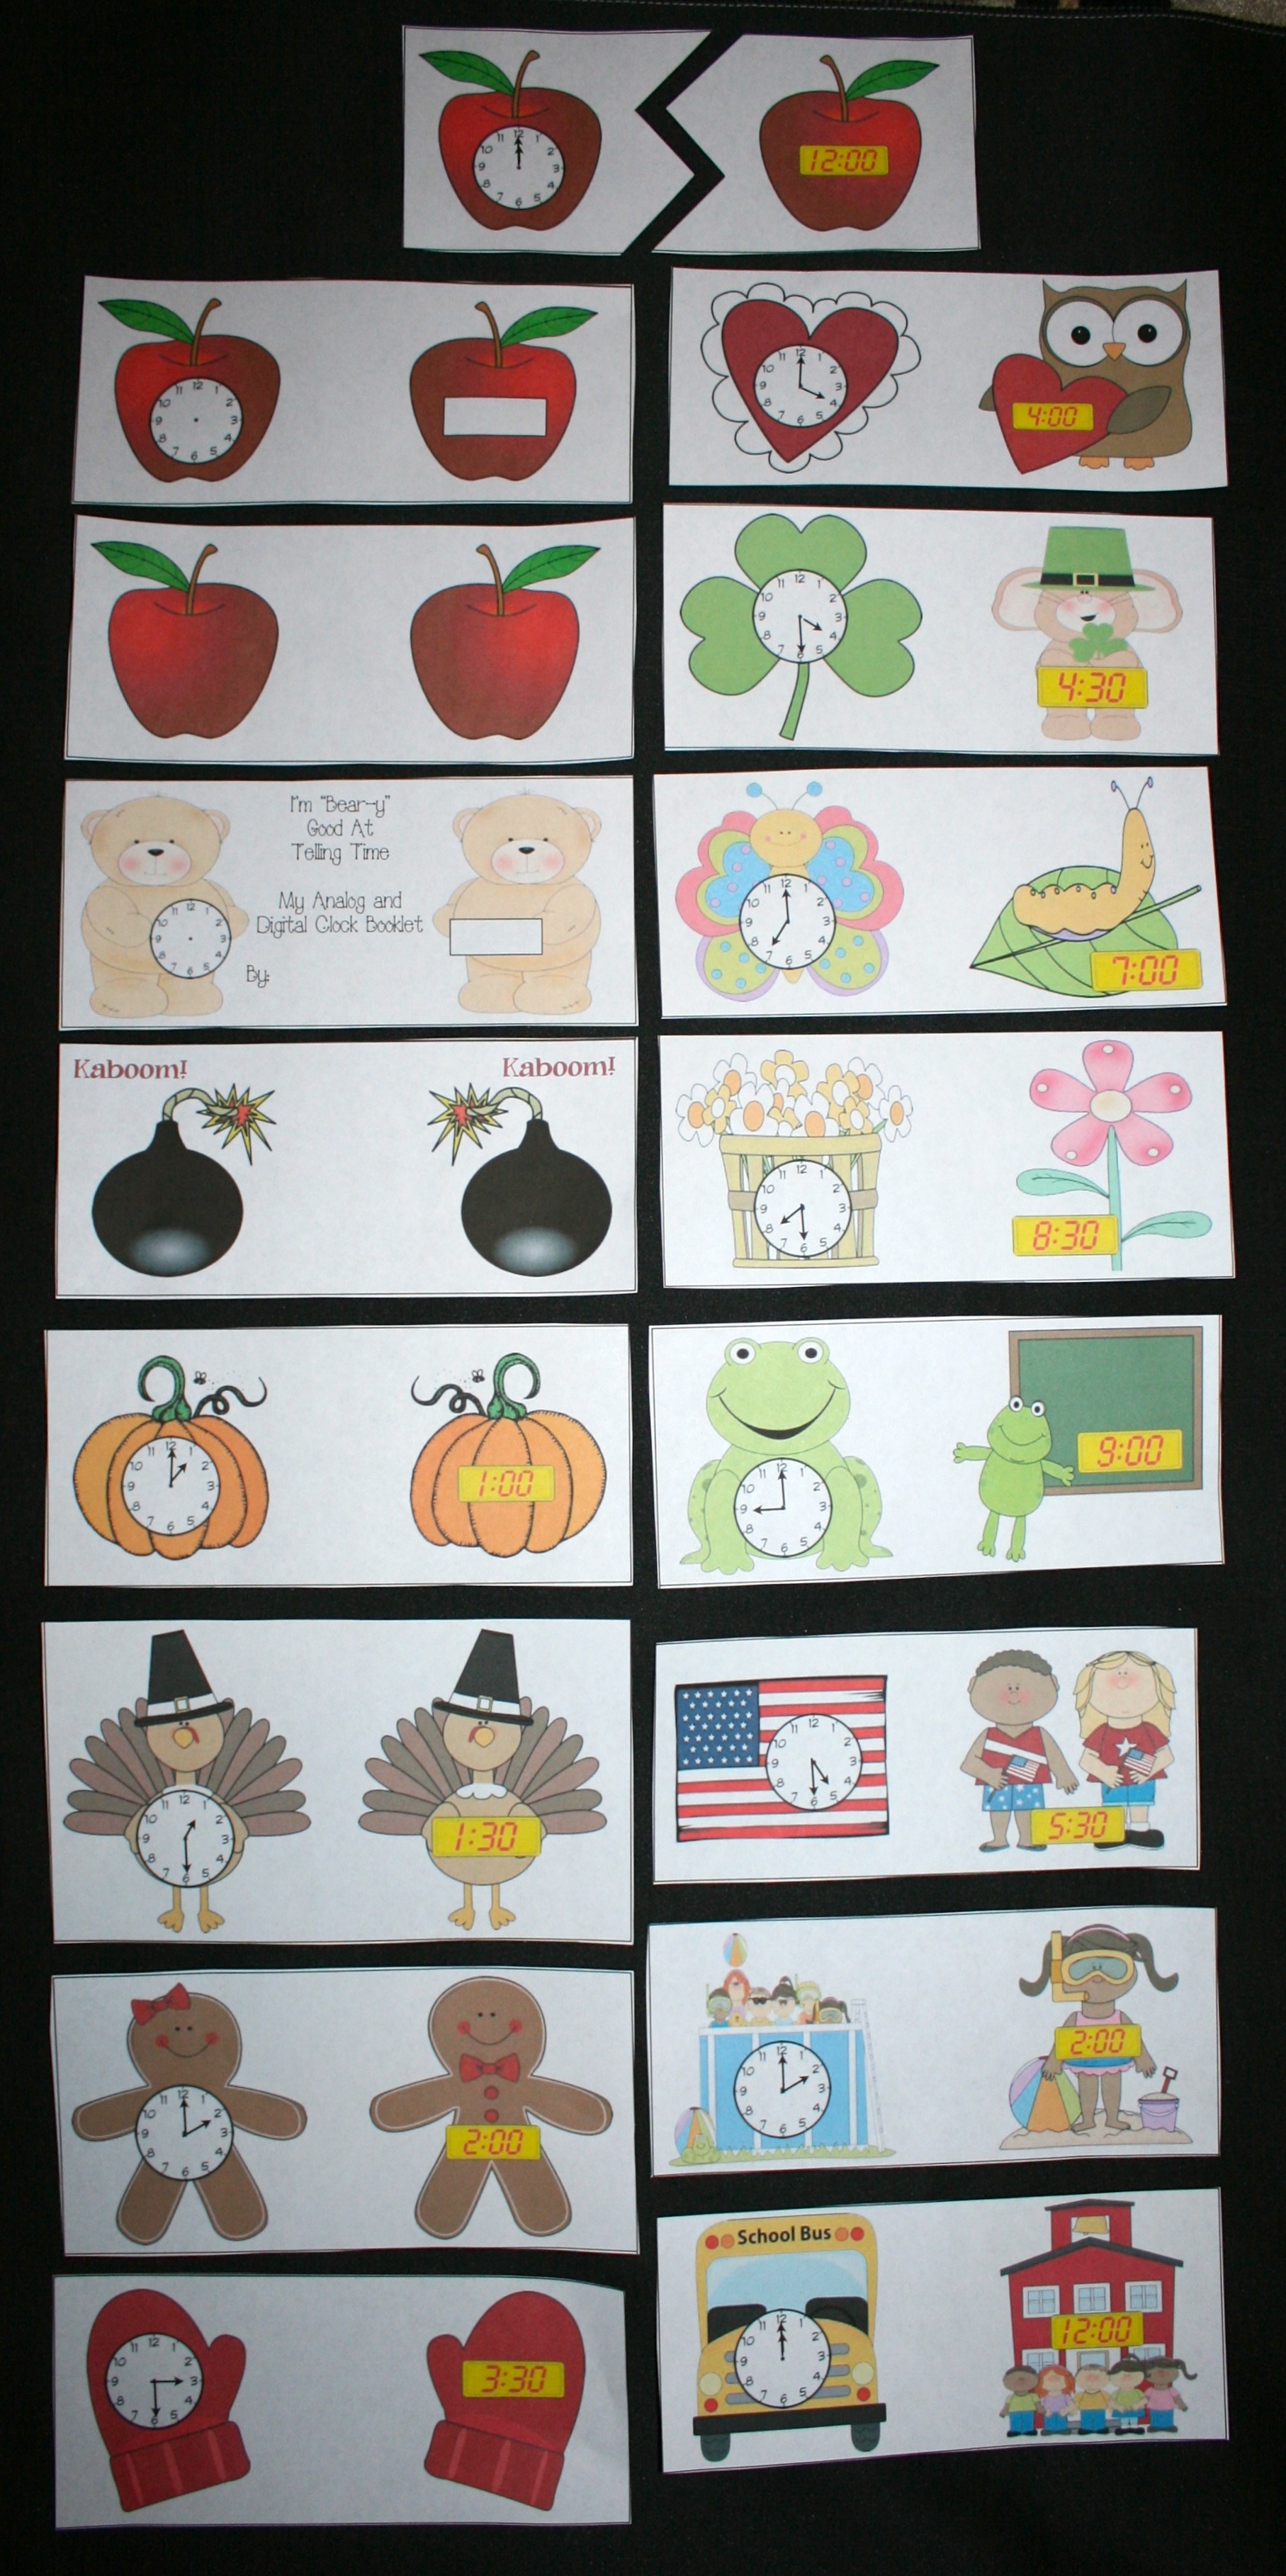 telling time activities, analog clock cards, digital clock cards, telling time games, 1.Md.3, teacher clocks, monthly clocks, seasonal activities with clocks, fun telling time,telling time assessments,